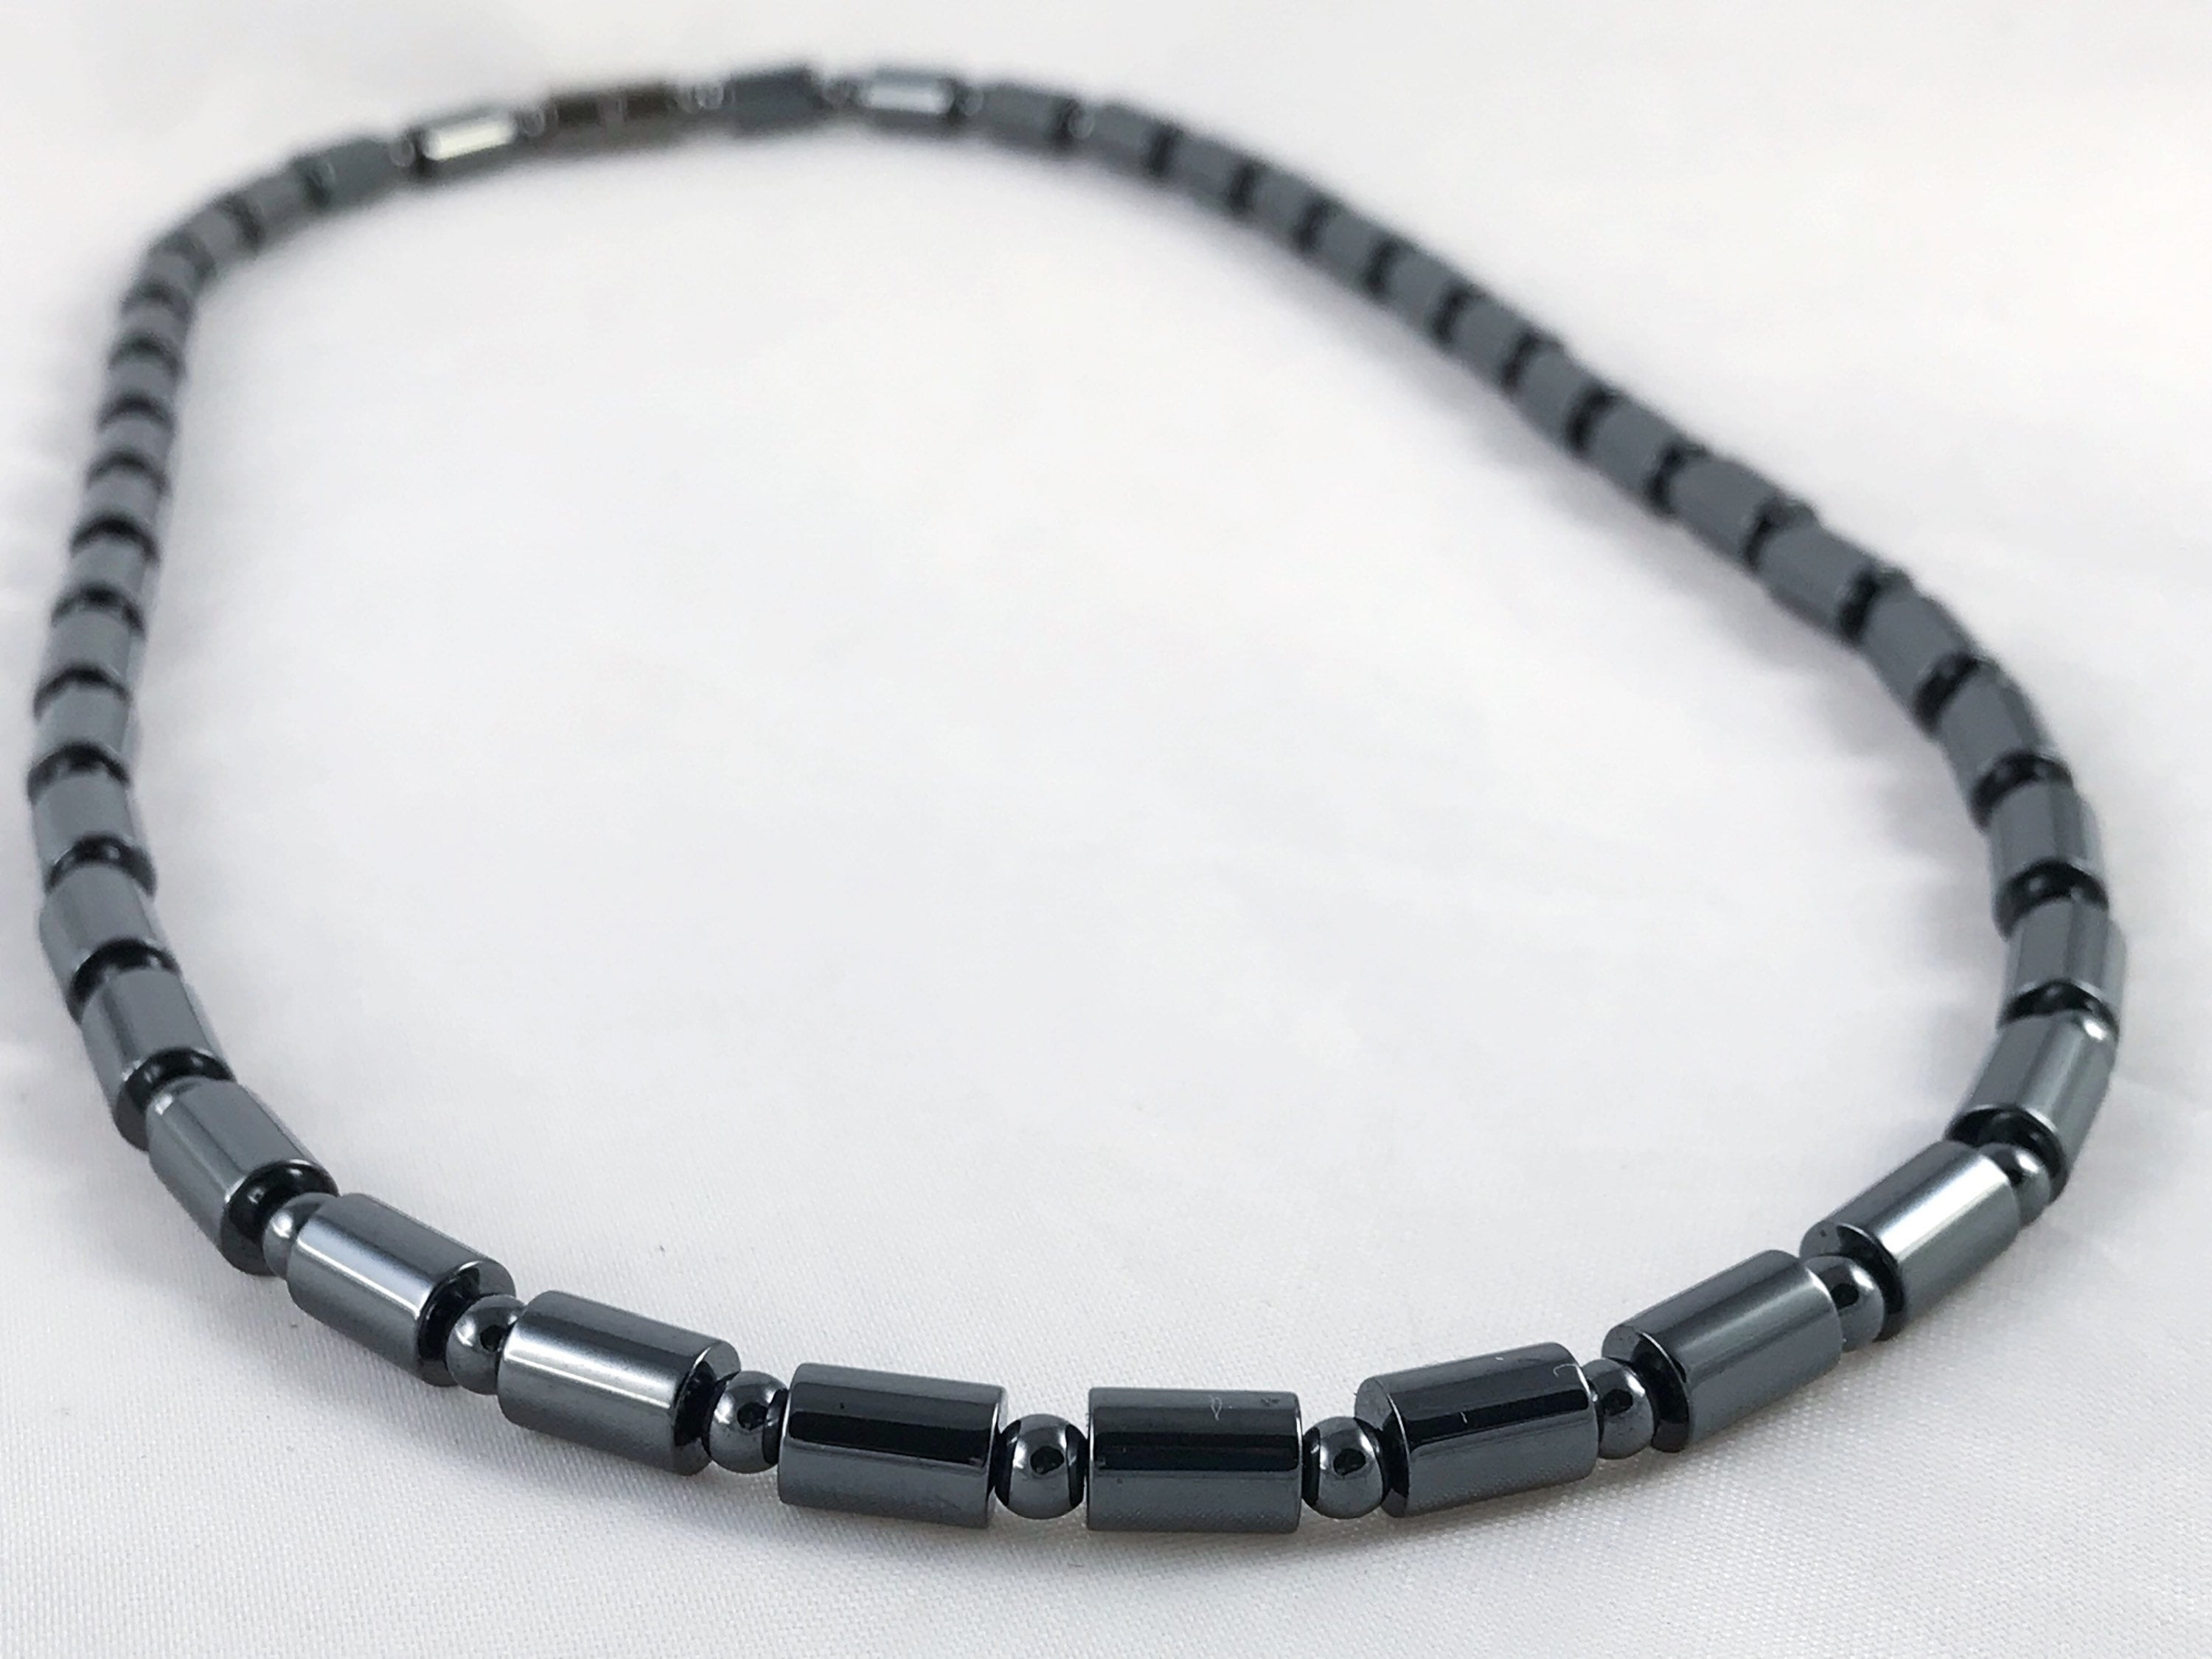 orders shipping free hematite bracelet polished watches on jewelry overstock adjustable beaded wide jewellery over stone product